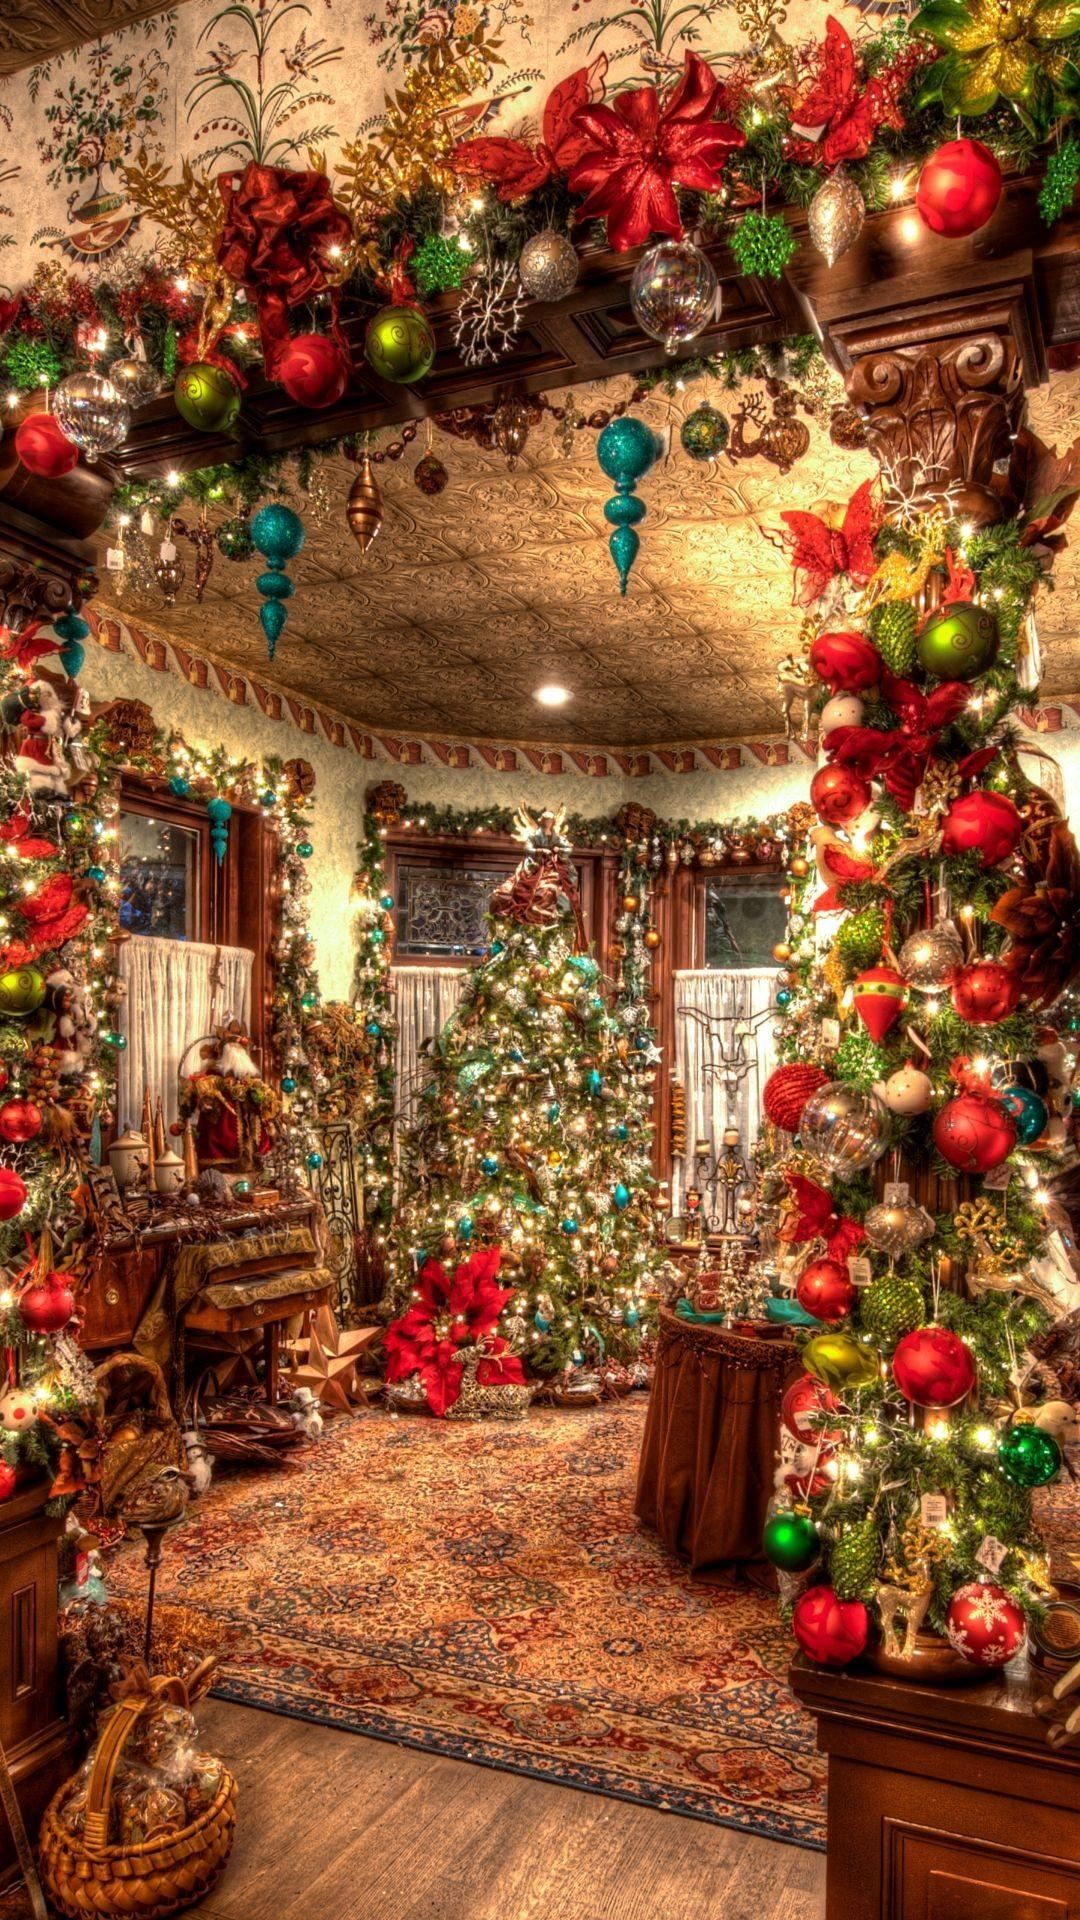 Christmas Decorations Big Room Tree Android Wallpaper download 1080x1920